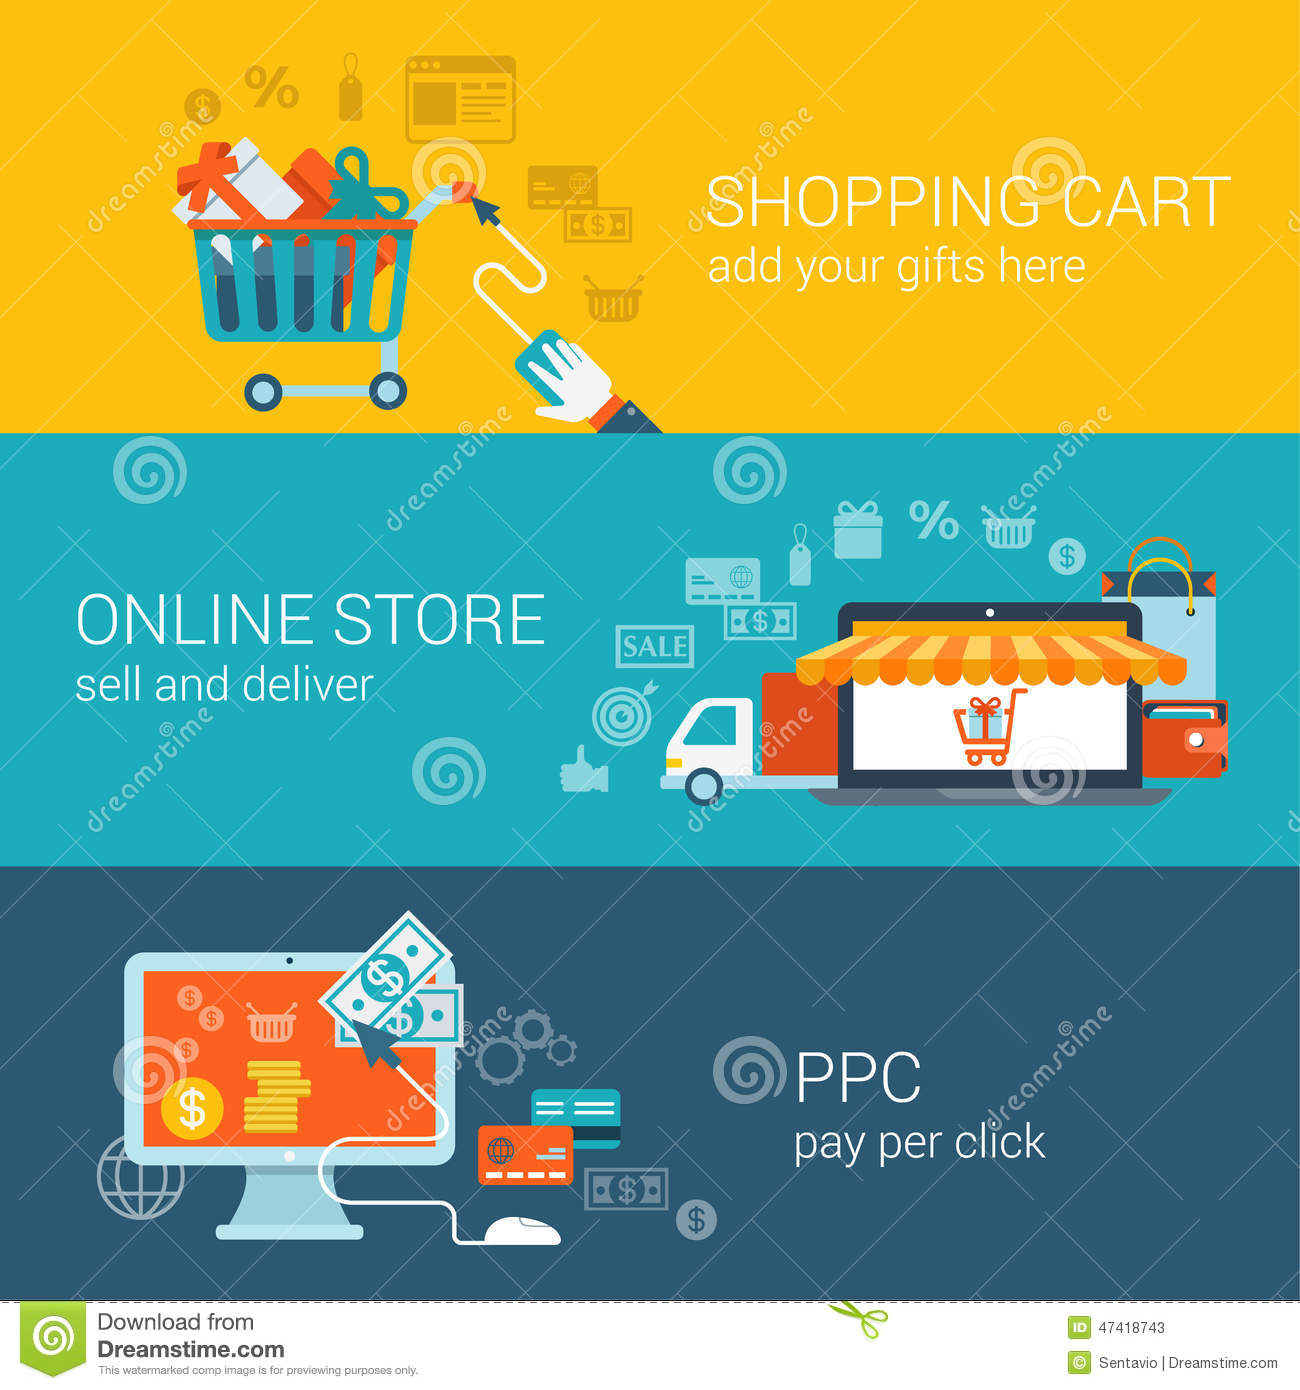 Store Banne Vehicule Shopping Cart Online Store Pay Per Click Flat Style